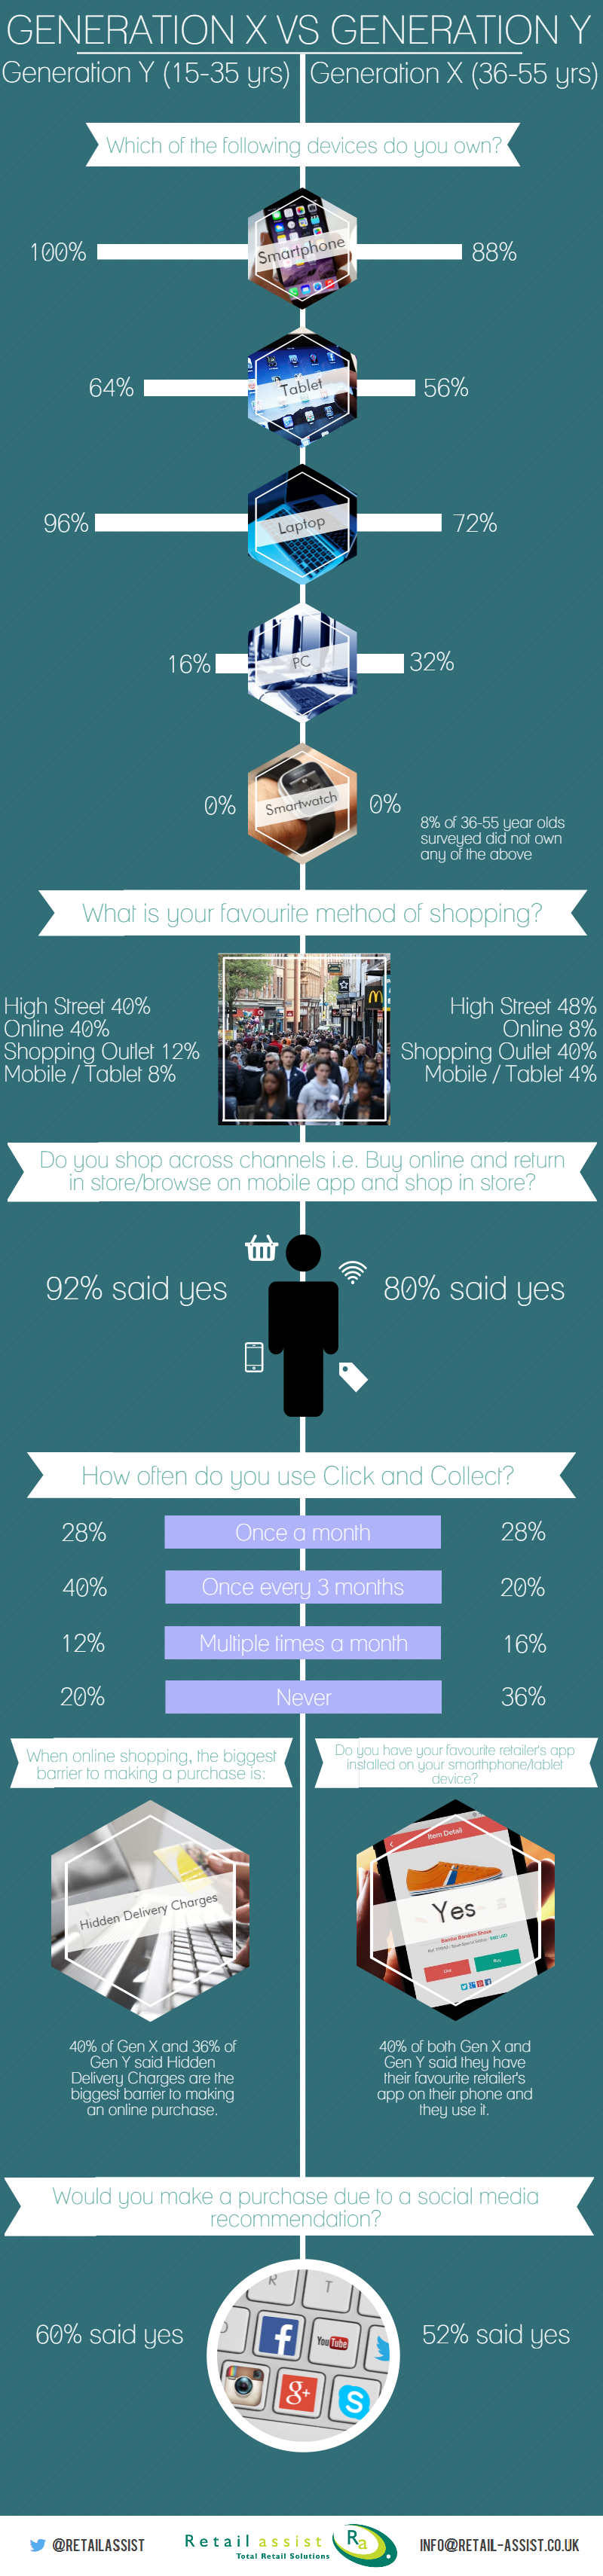 gen x and gen y shopping survey retail assist as you can see the difference between gen x and gen y s use of technology doesn t look startlingly different the large majority of consumers are engaged